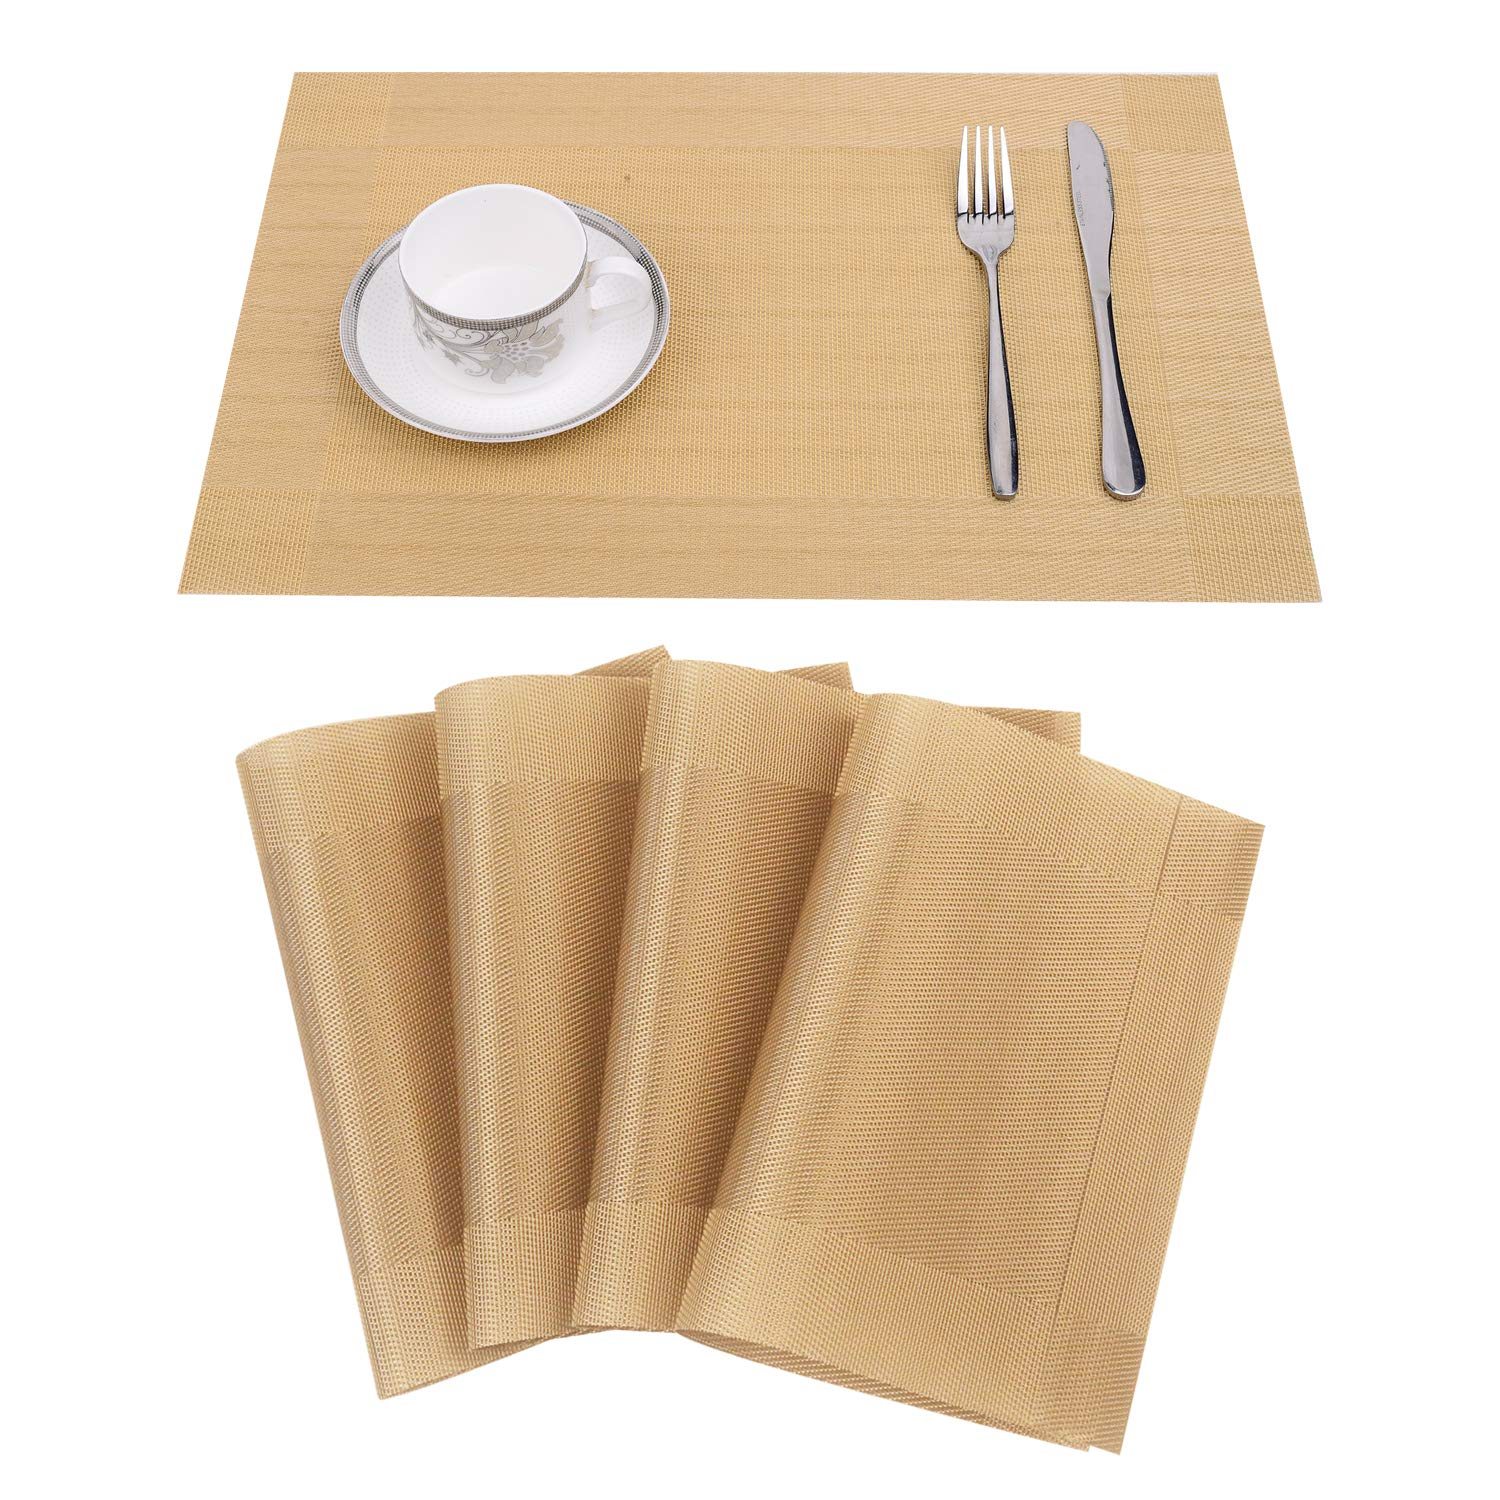 ABCCANOPY Placemats for Dining Table Heat Resistant Crossweave Woven Vinyl Non-Slip Insulation Washable Kitchen Table Mats Decoration Set of 4